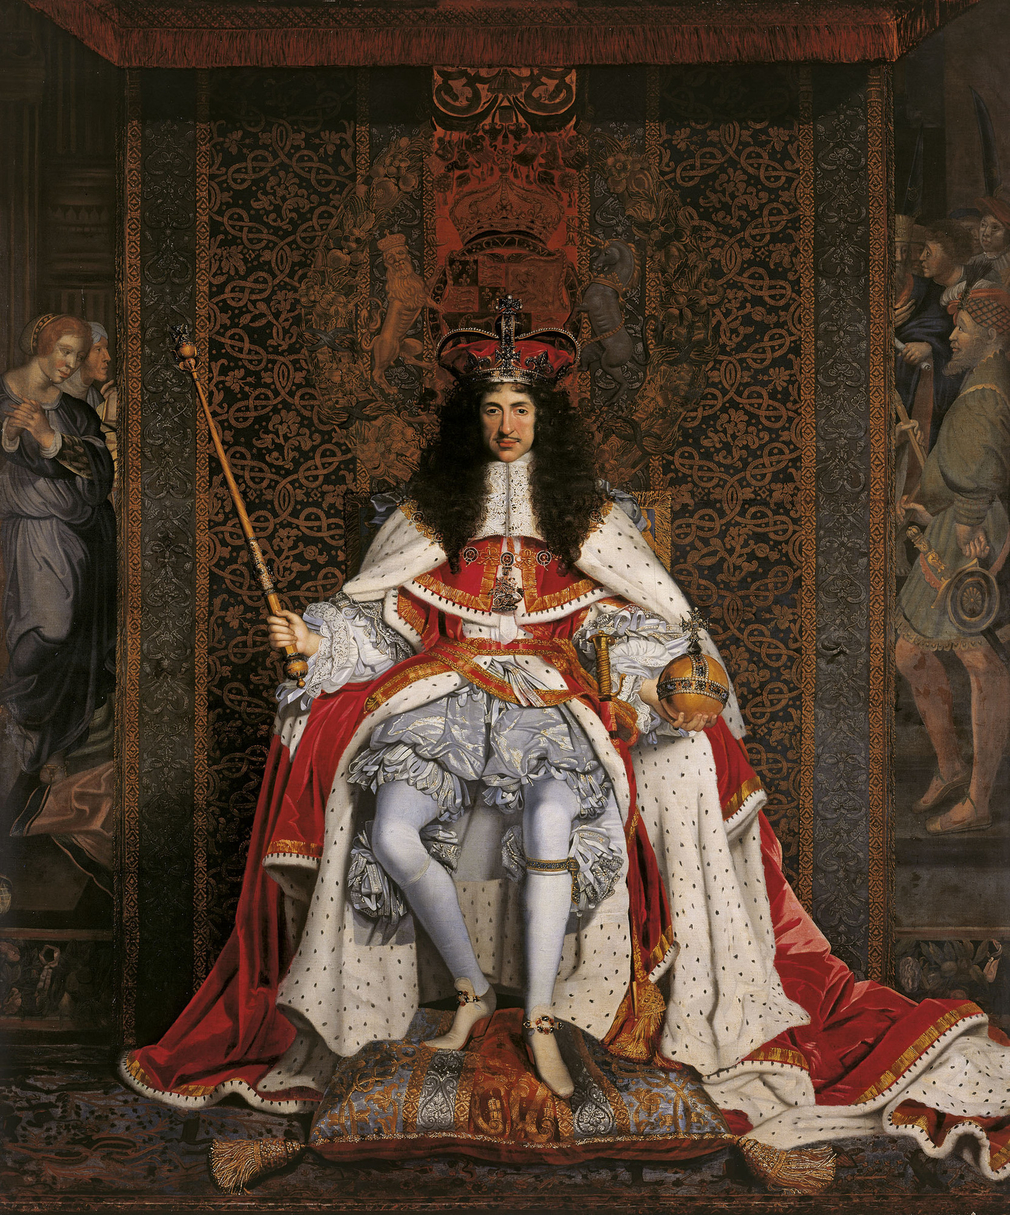 This powerful painting is an outstanding example of the artist's work, as well as an enduring image of monarchy restored. The King wears St Edward's crown, is dressed in parliamentary robes over the Garter costume and carries the new orb and s